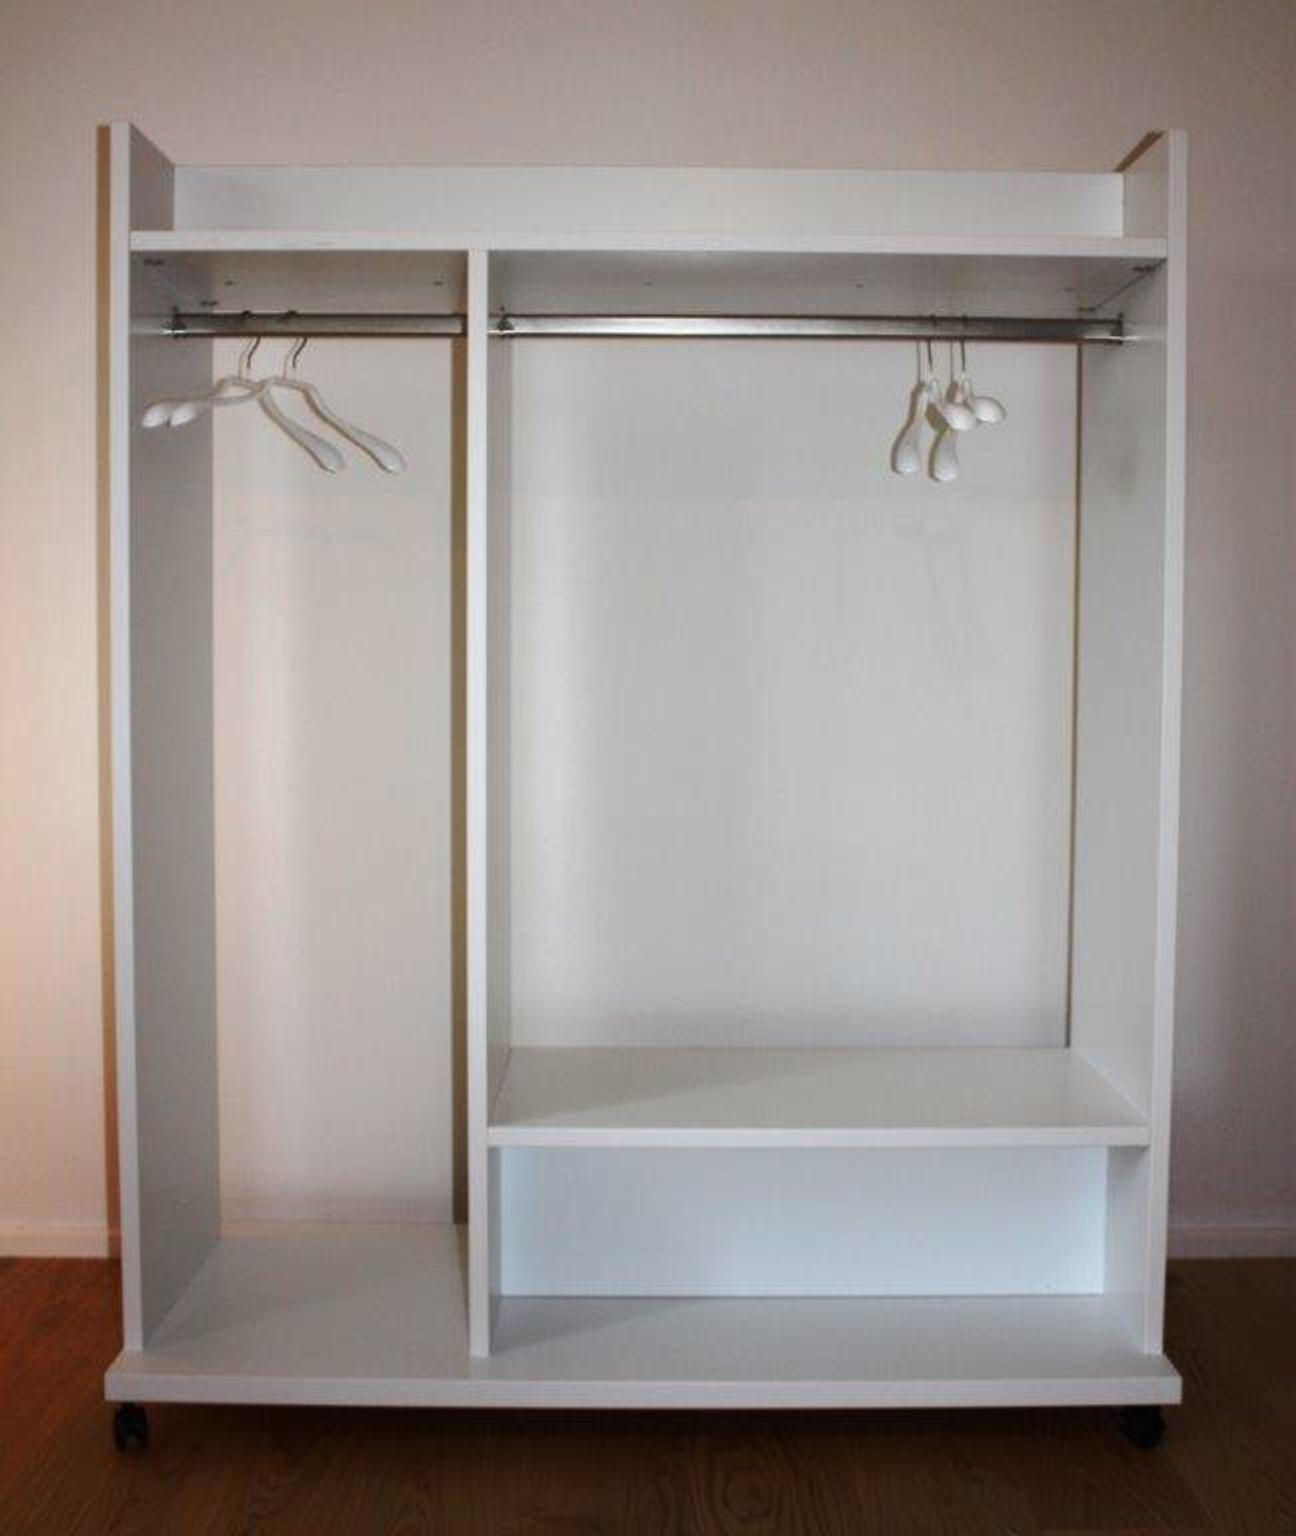 Garderobe Dressbox Mobil Weiss Neu In 83112 Frasdorf For 50 00